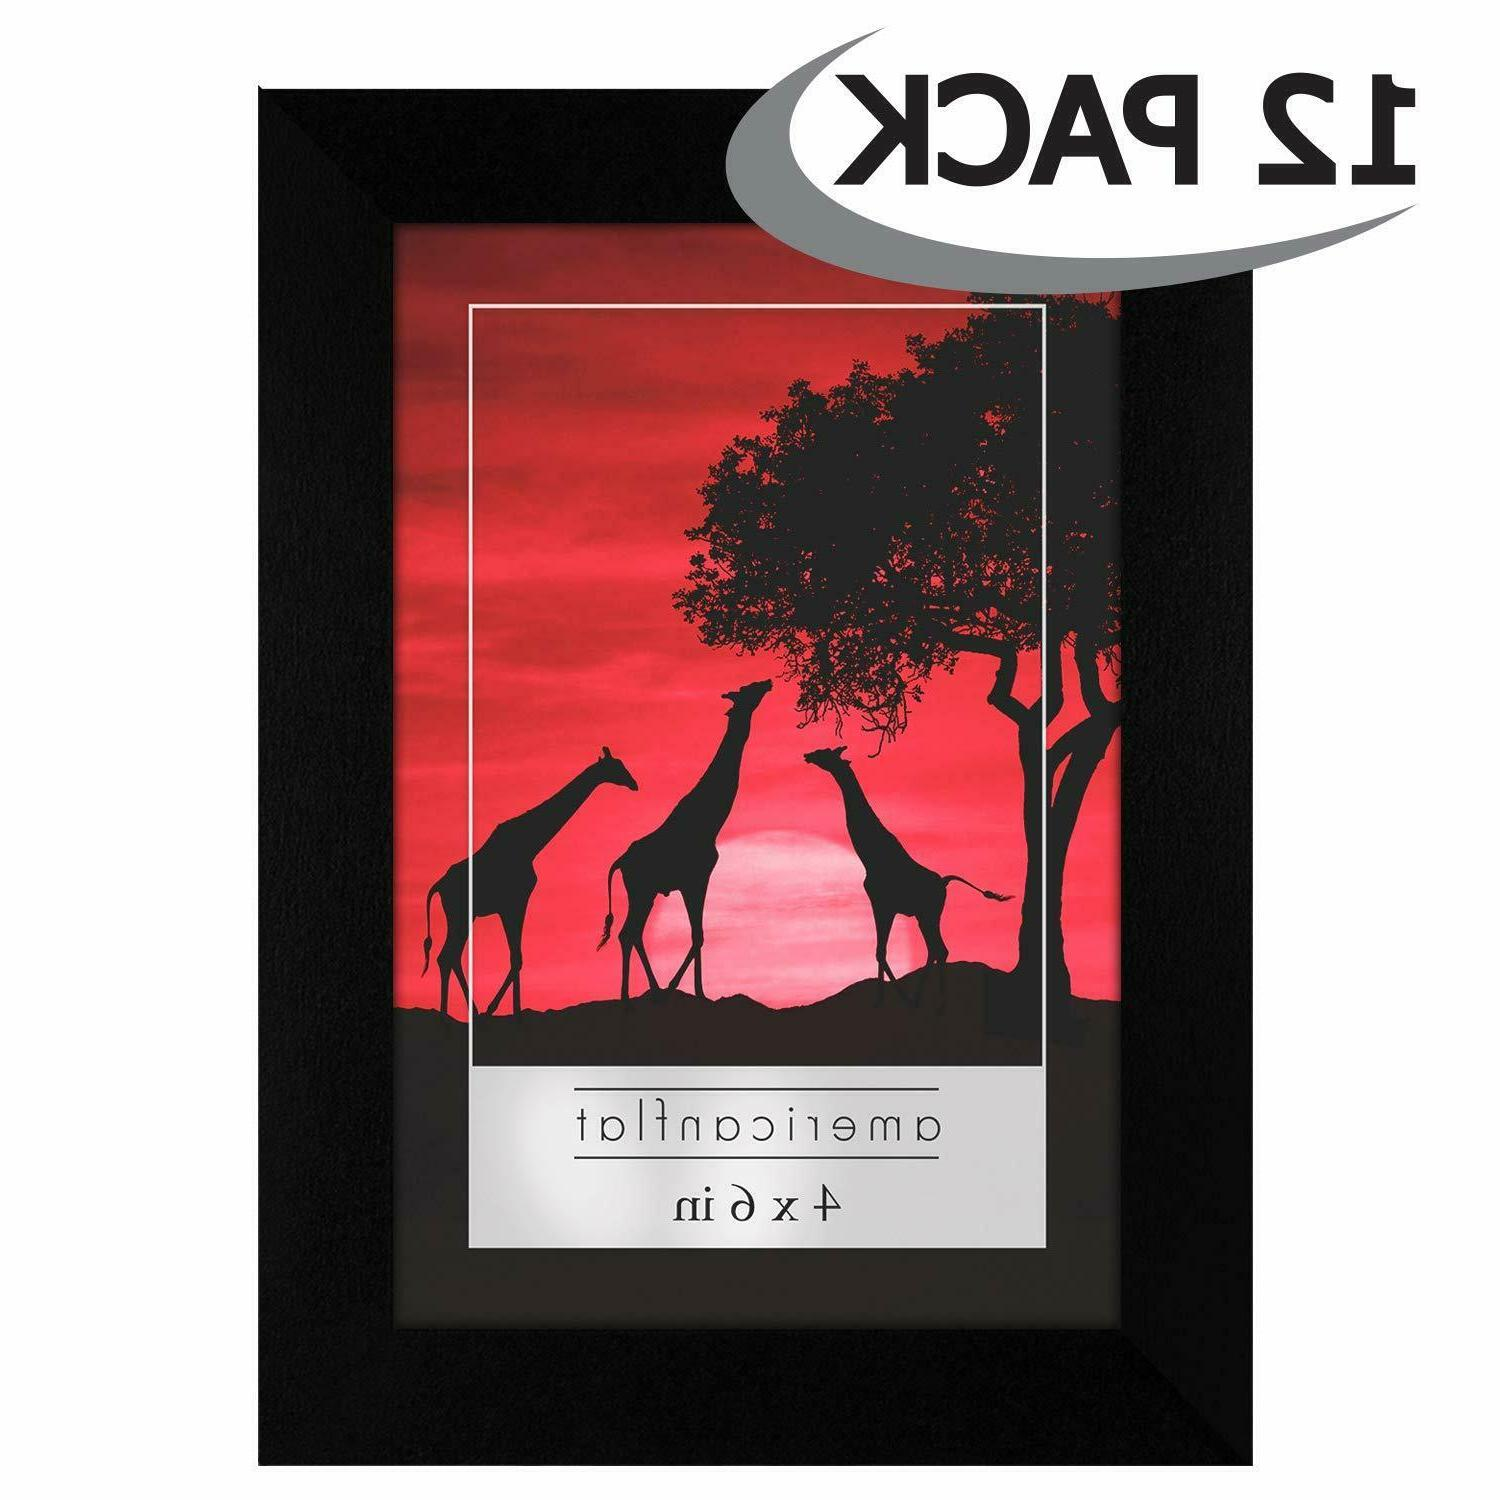 Americanflat 12 4x6 Frames - Display Pictures